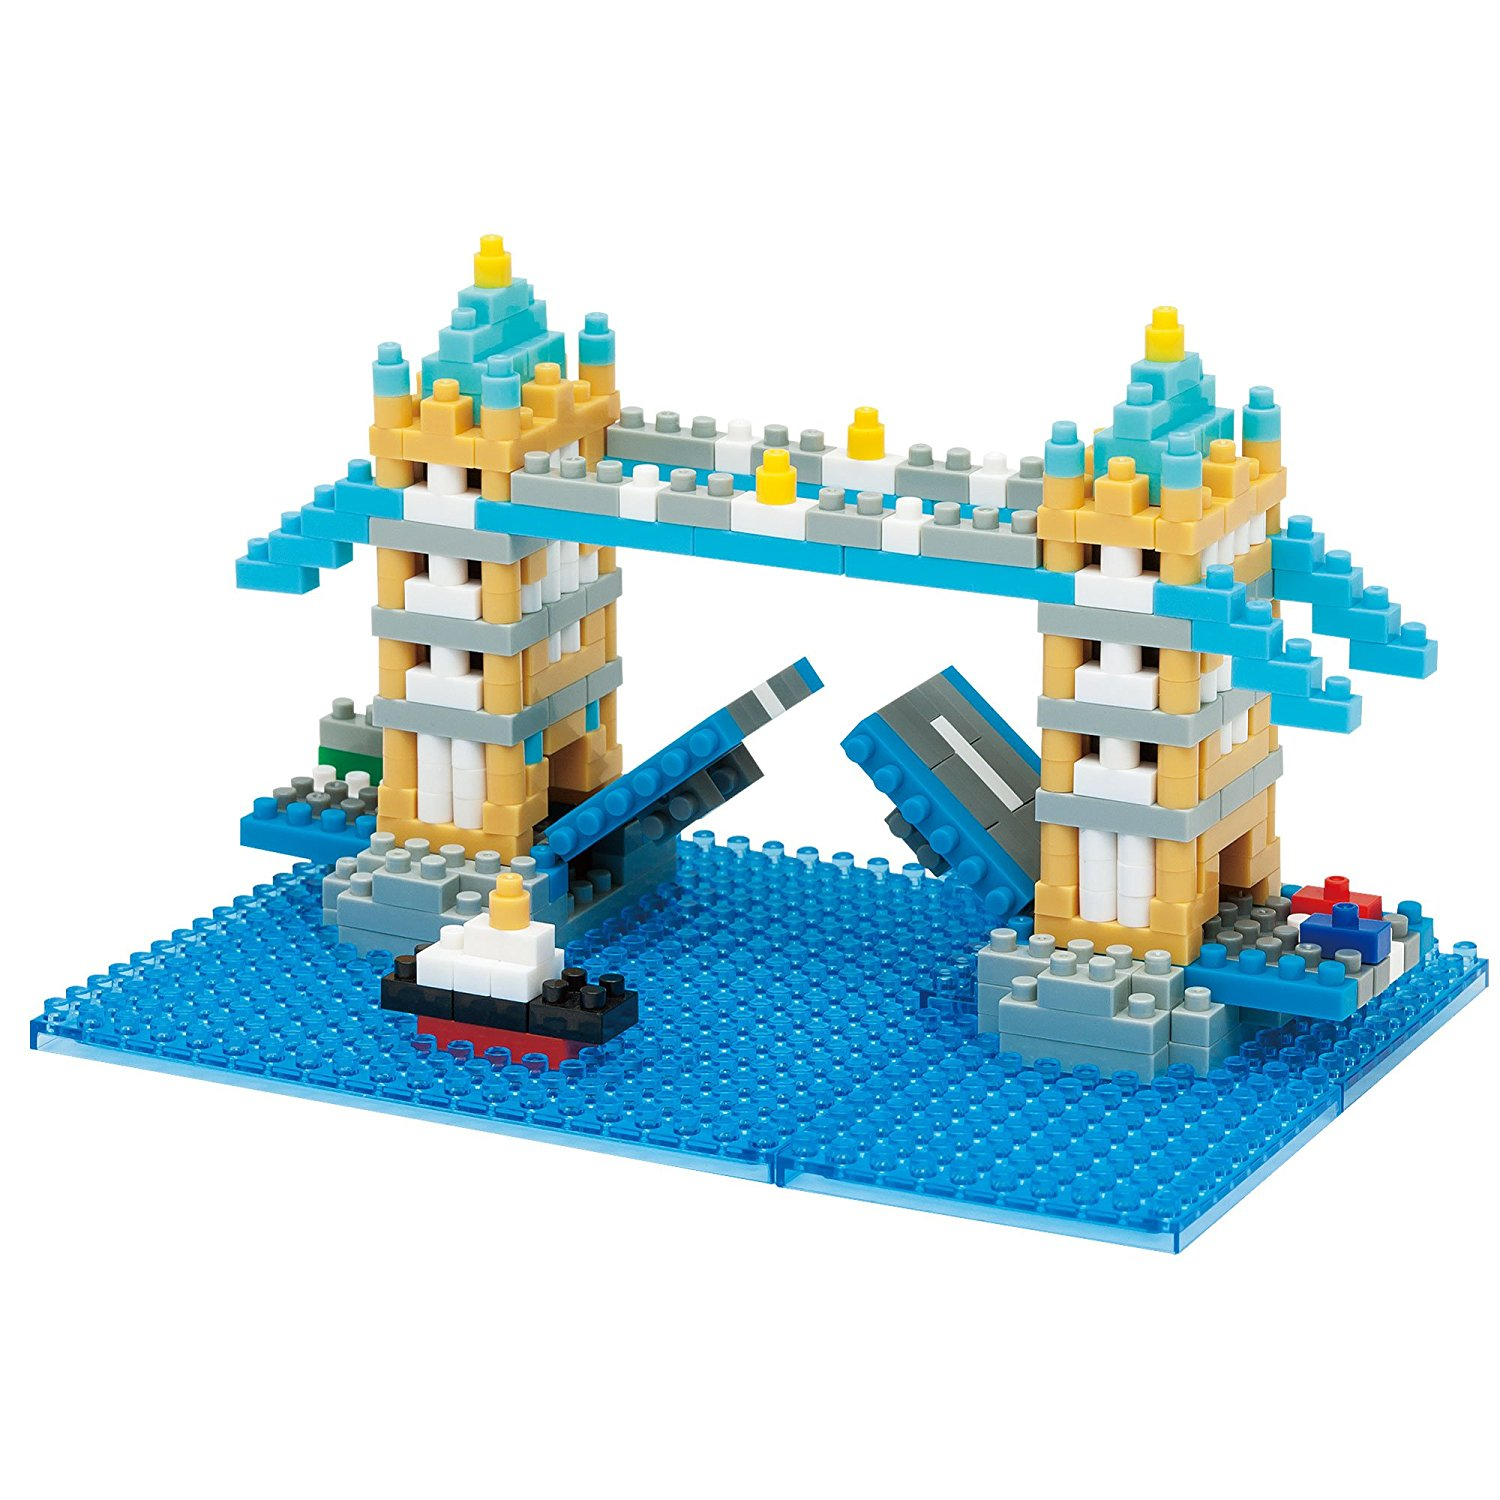 Nanoblock London Tower Bridge 3D Puzzle by nanoblock